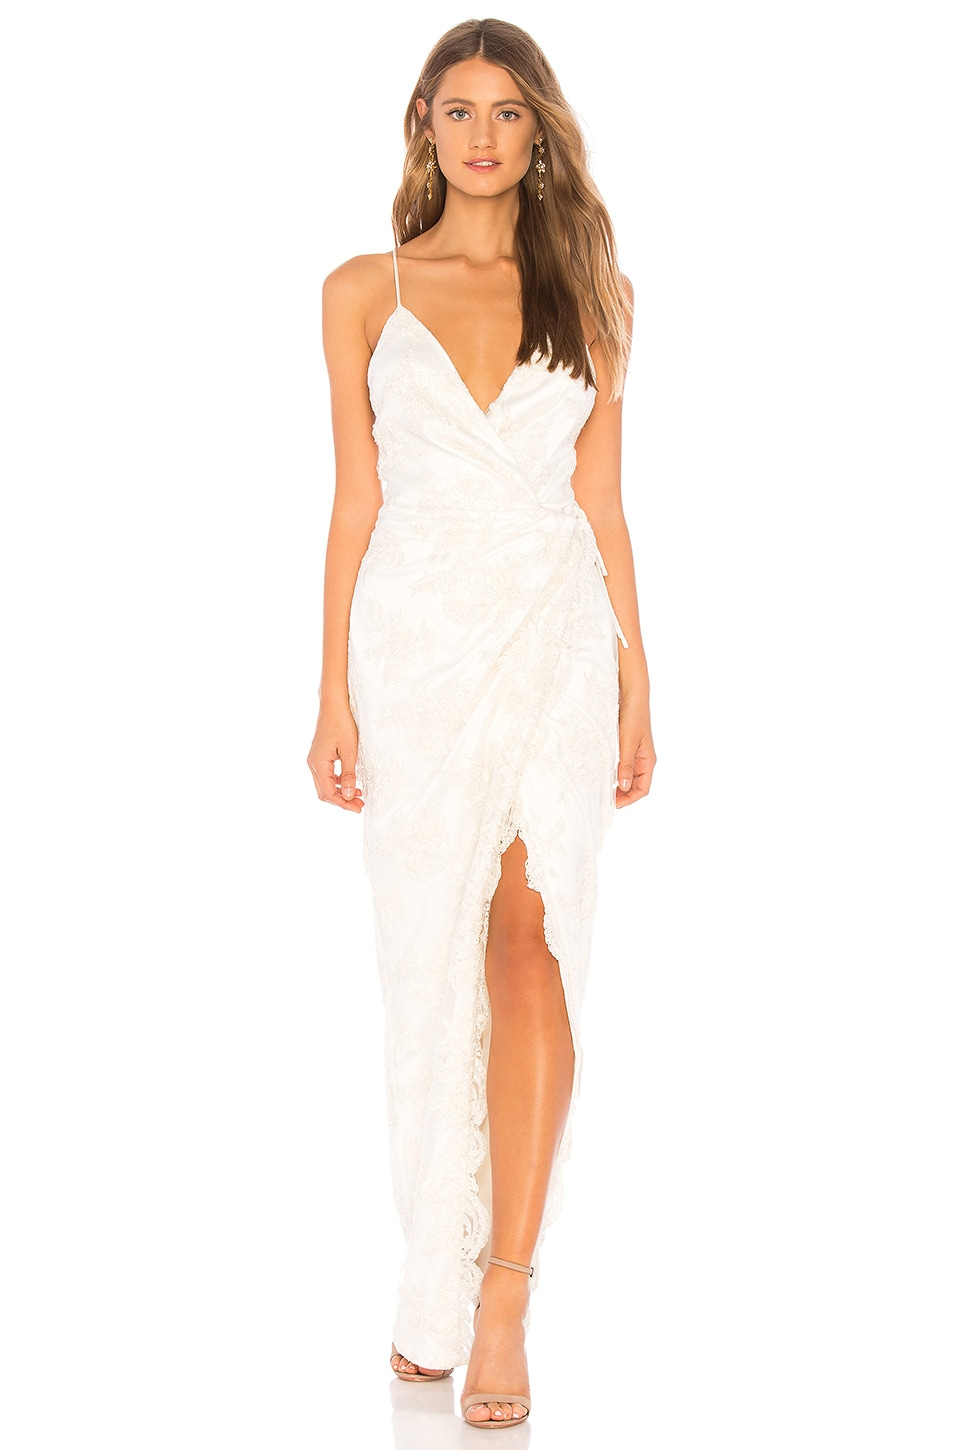 Michael Costello x REVOLVE Adeline Gown in Ivory